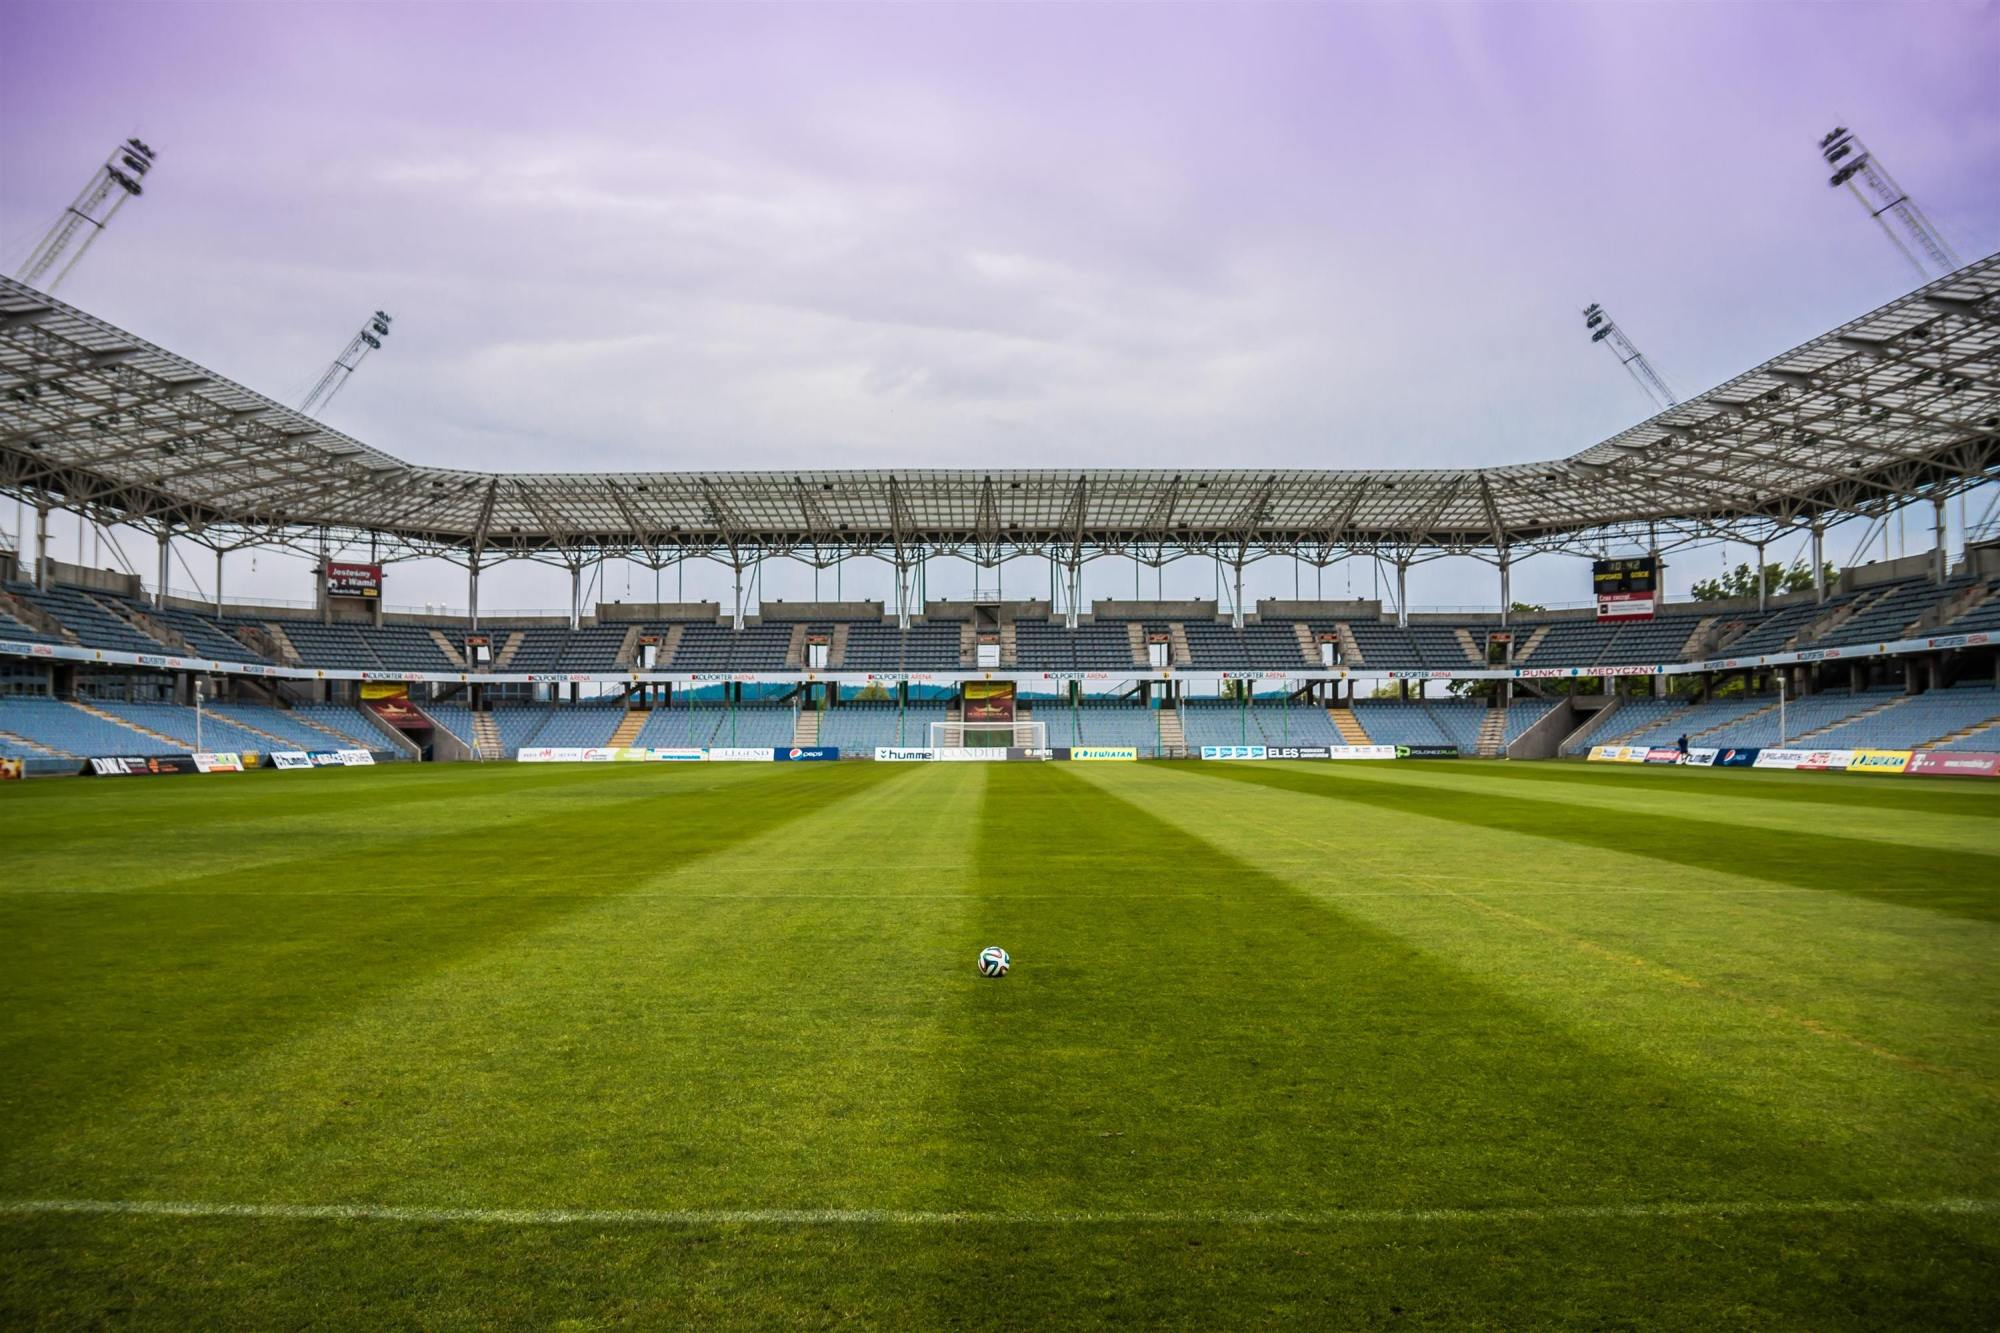 Managing Virus Risks for Live Sports in Stadia